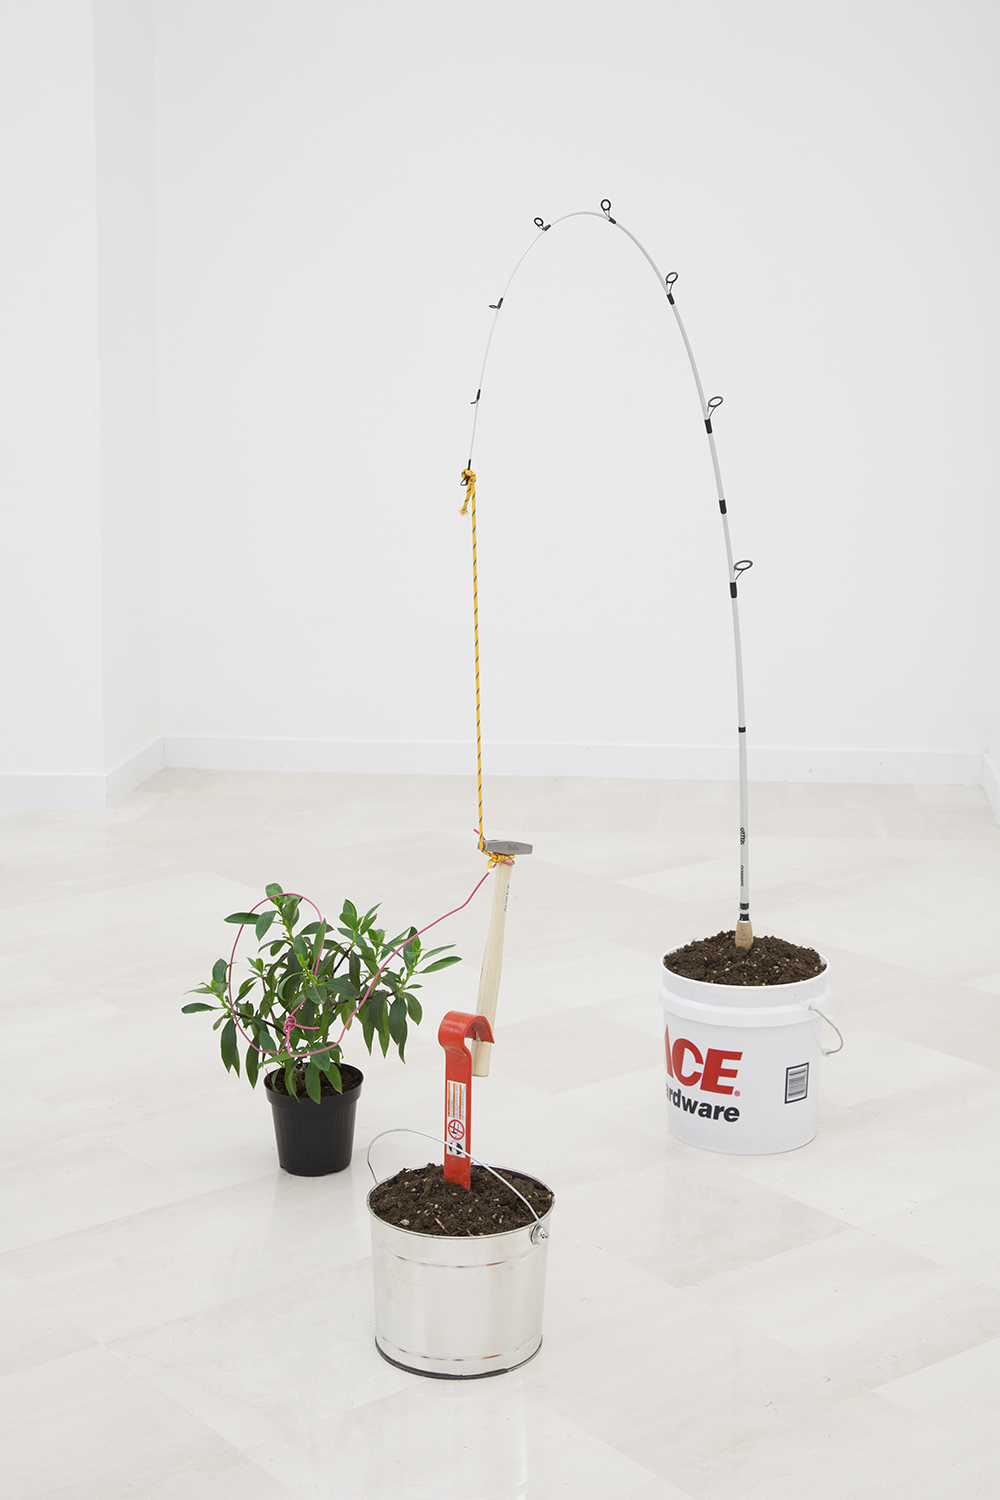 NICK DARMSTAEDTER  Valerie Veran, 2014  Fishing pole, buckets, plant, crowbar, tack hammer, dirt and cord  33 x 55 x 24 inches